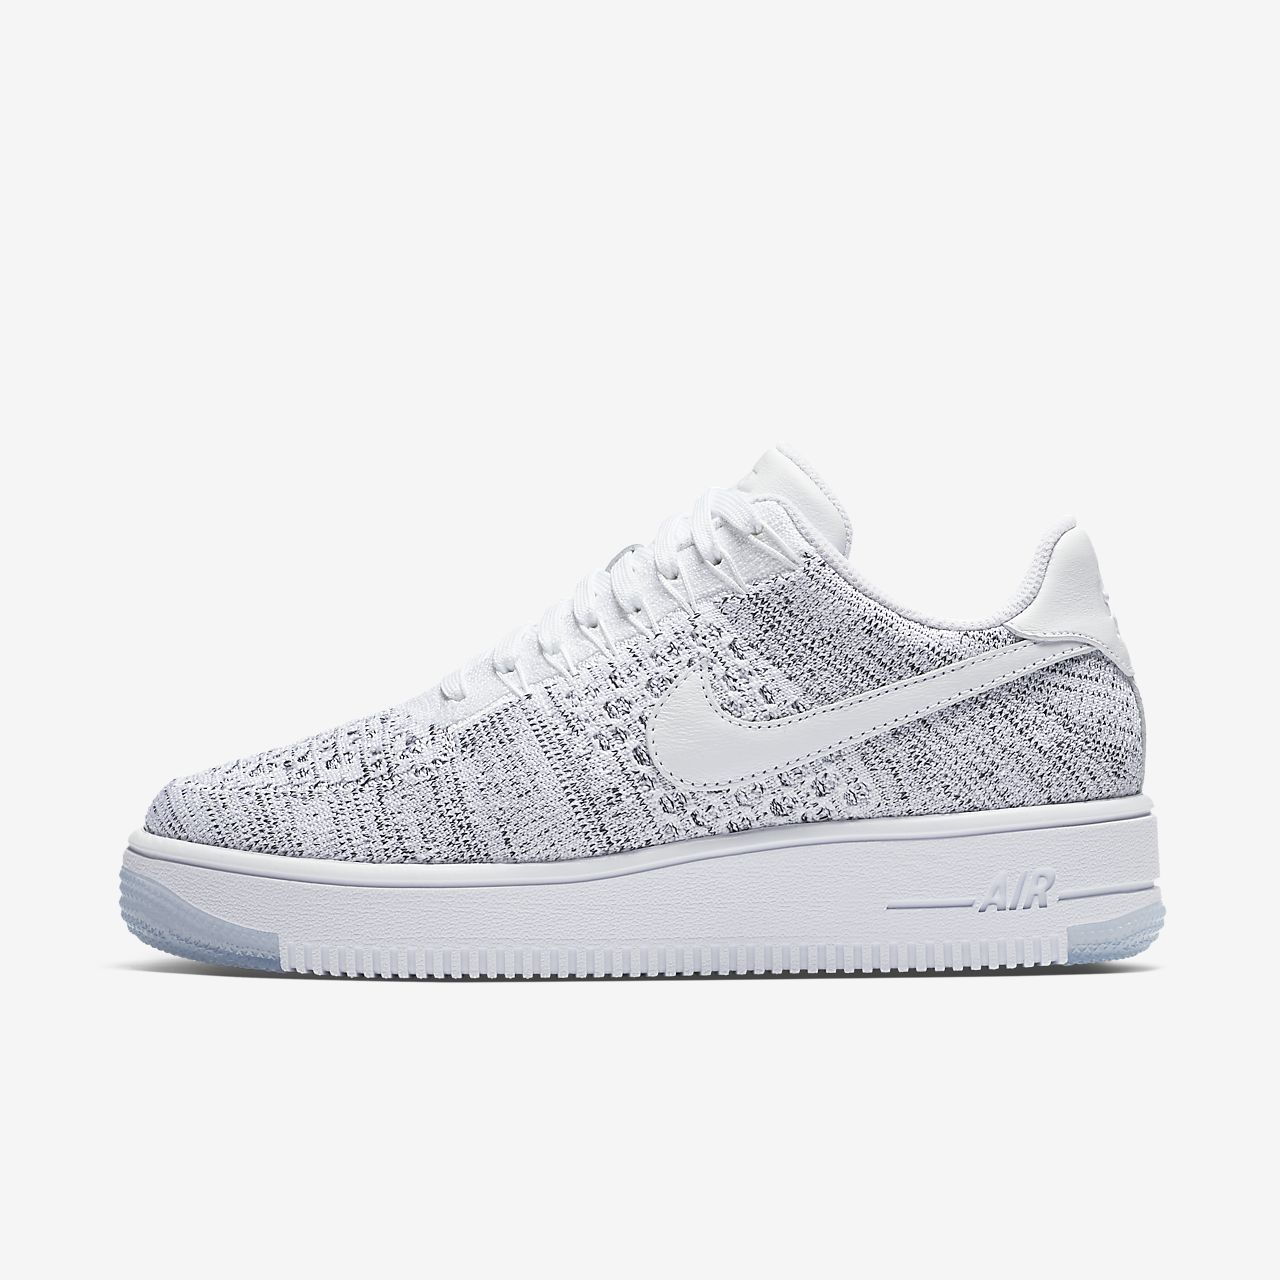 Nike Air Force 1 Faible 43 Choses